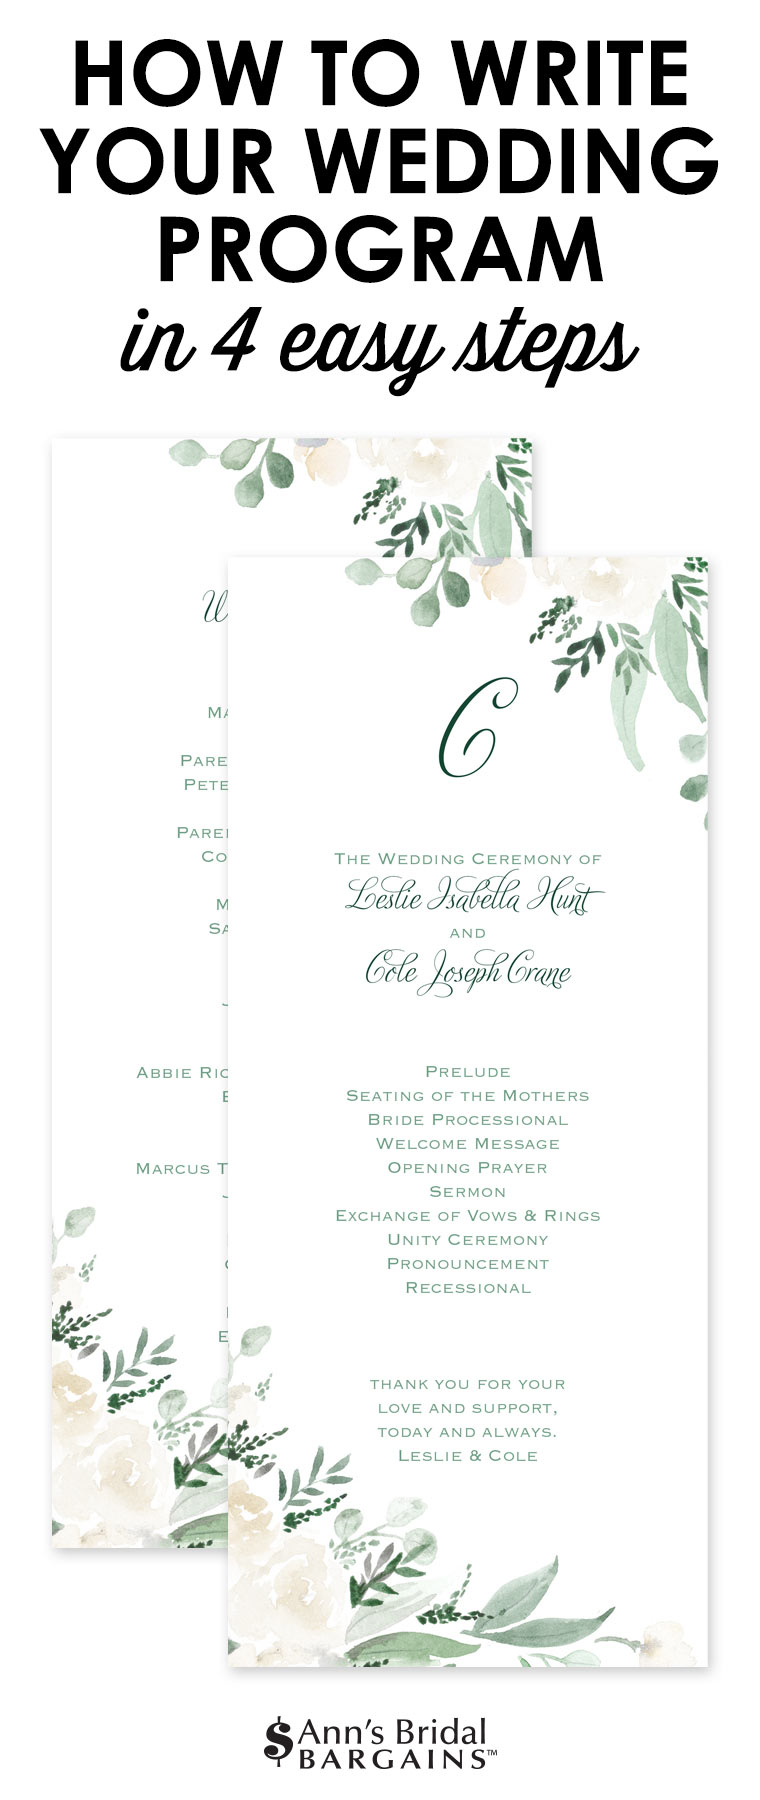 How To Write Your Wedidng Progam In 4 Easy Steps Wedding Program Etiquette Wedding Programs Cheap Wedding Programs